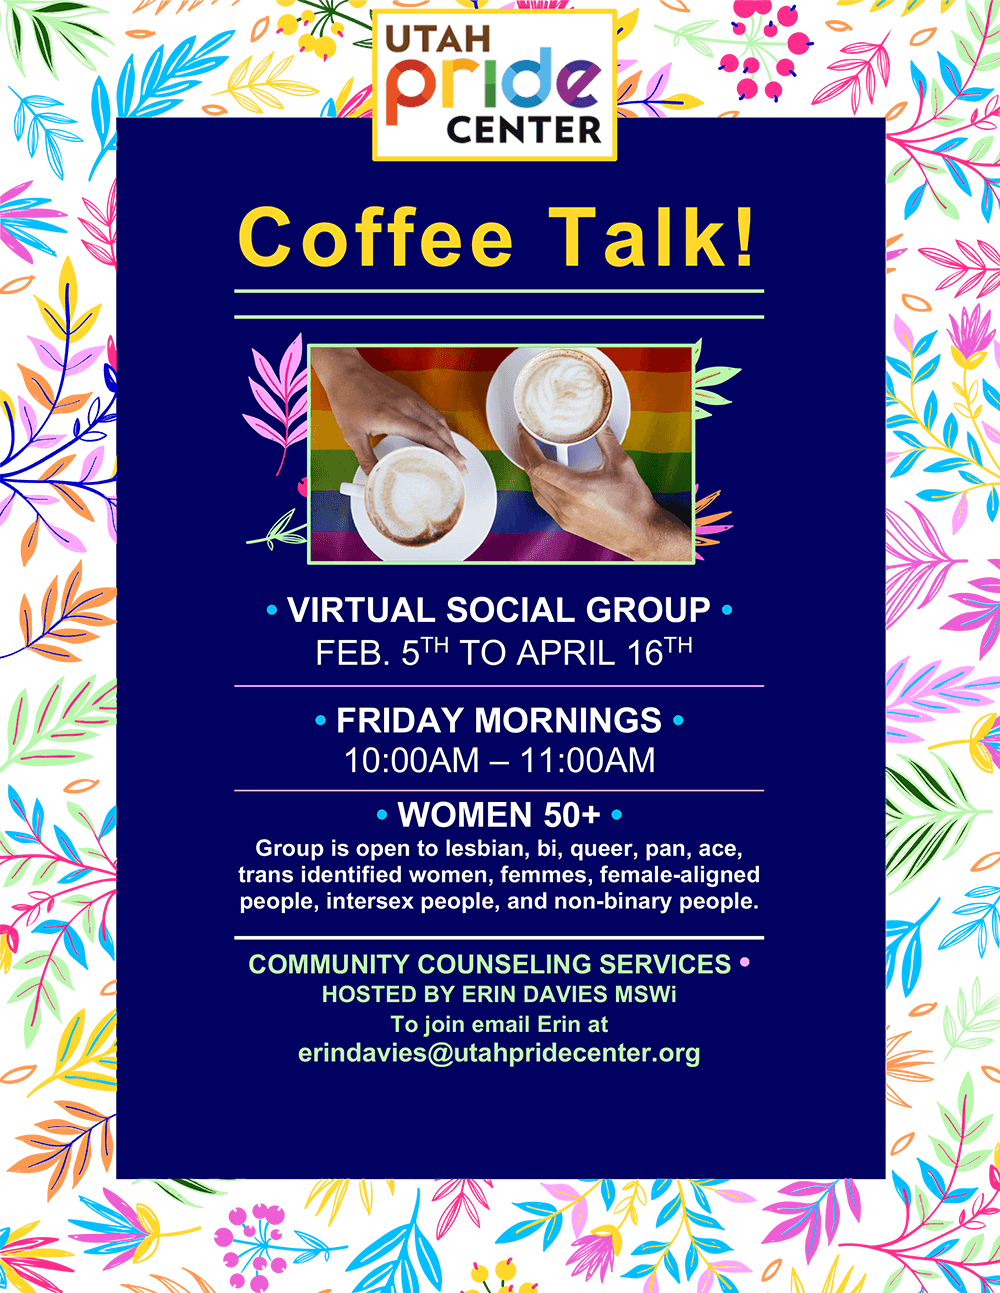 Coffee Talk A Virtual Social Group for Women 50+. Coffee Talk! is held Friday Mornings from 10:00am – 11:00am Group is open to lesbian, bi, queer, pan, ace, trans identified women, femmes, female-aligned people, intersex people, and non-binary people.  Coffee Talk will run from February 5th to April 16th  Provided by the Utah Pride Center Community Counseling Services Hosted by Erin Davies MSWi To join email Erin at erindavies@utahpridecenter.org